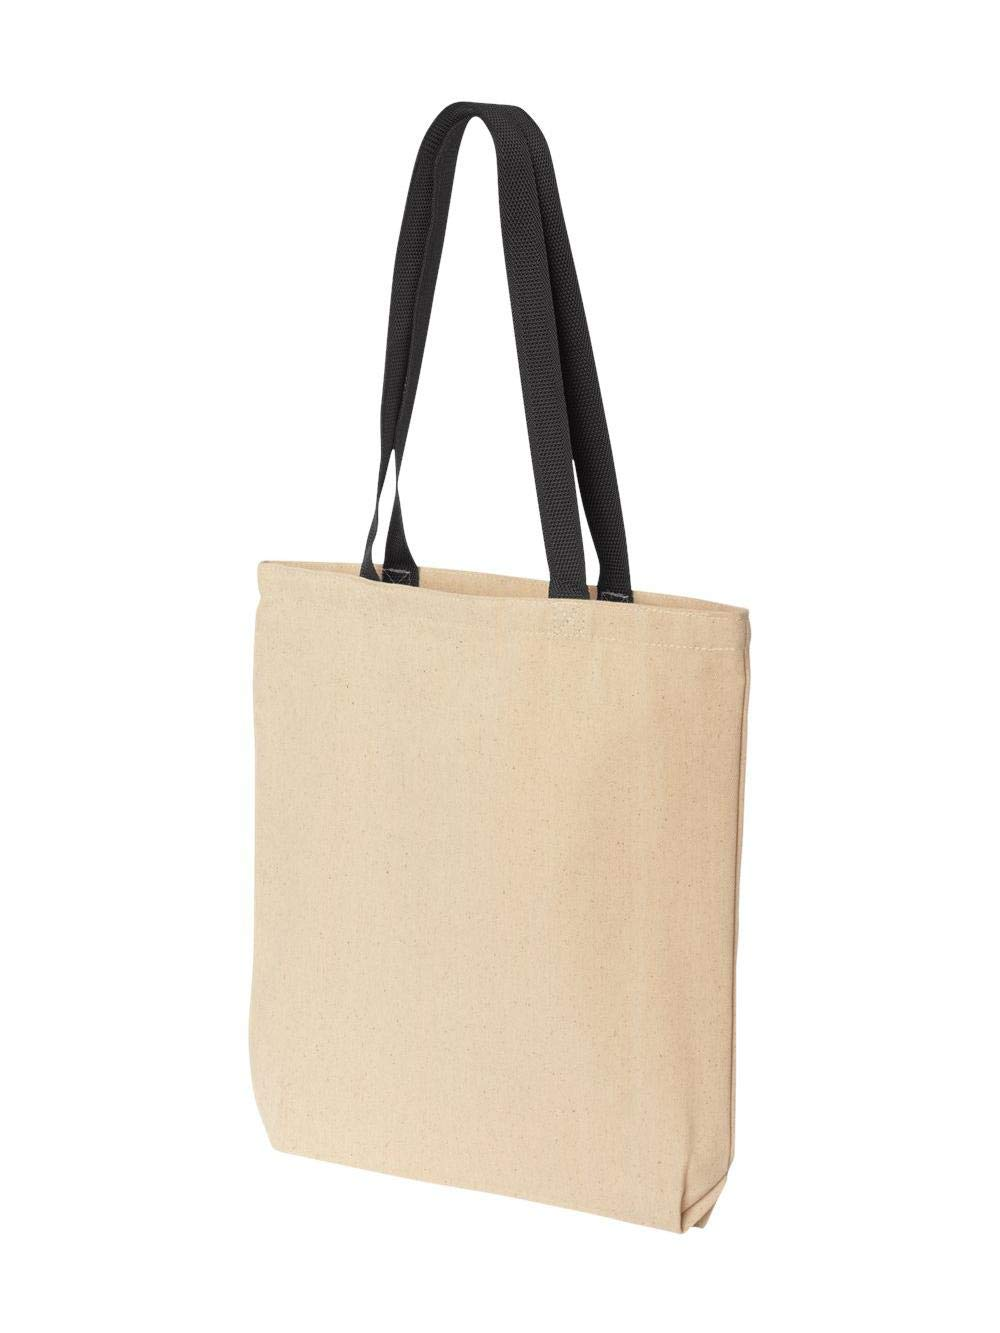 Liberty Bags Marianne Contrast Canvas Tote, One Size, Natural/Black by Liberty Bags (Image #1)